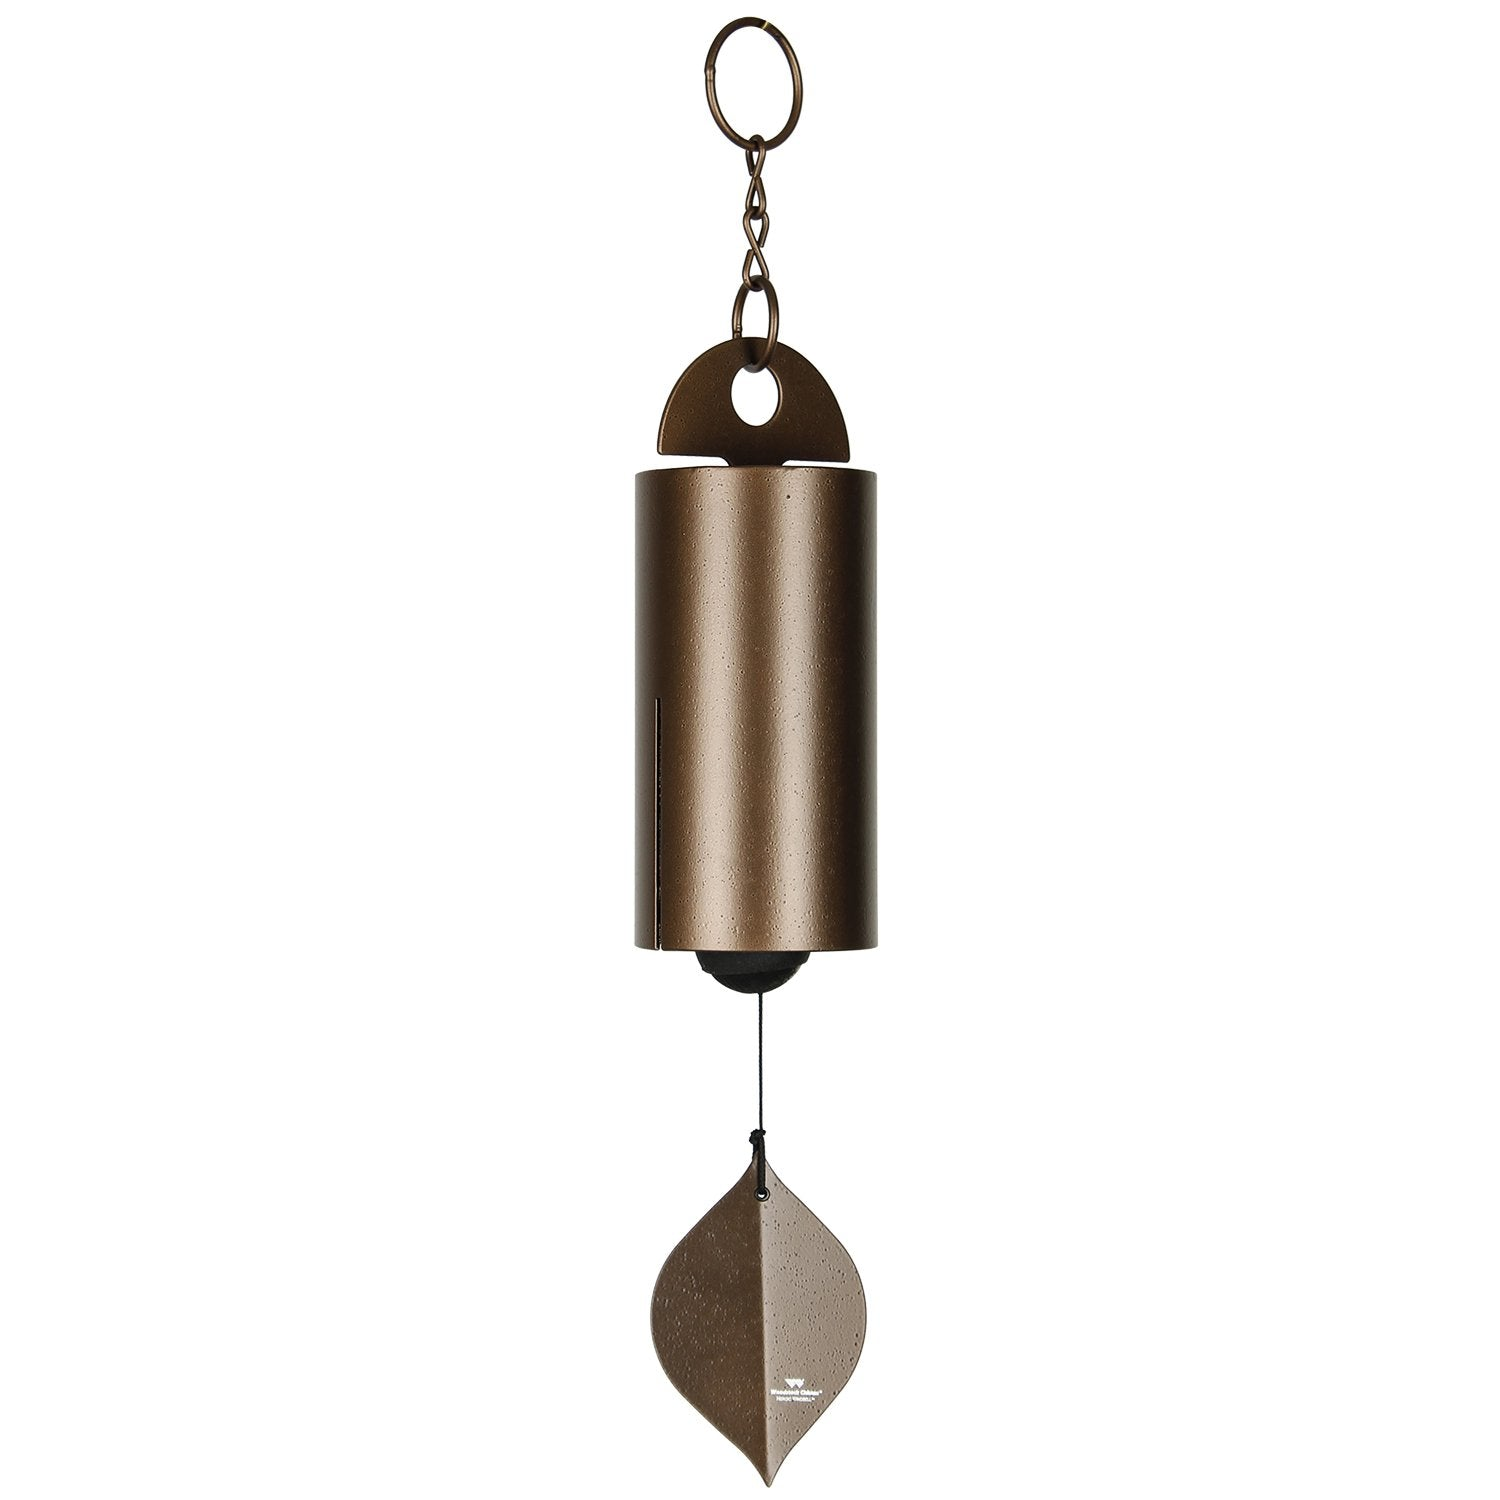 Heroic Windbell - Medium, Antique Copper full product image